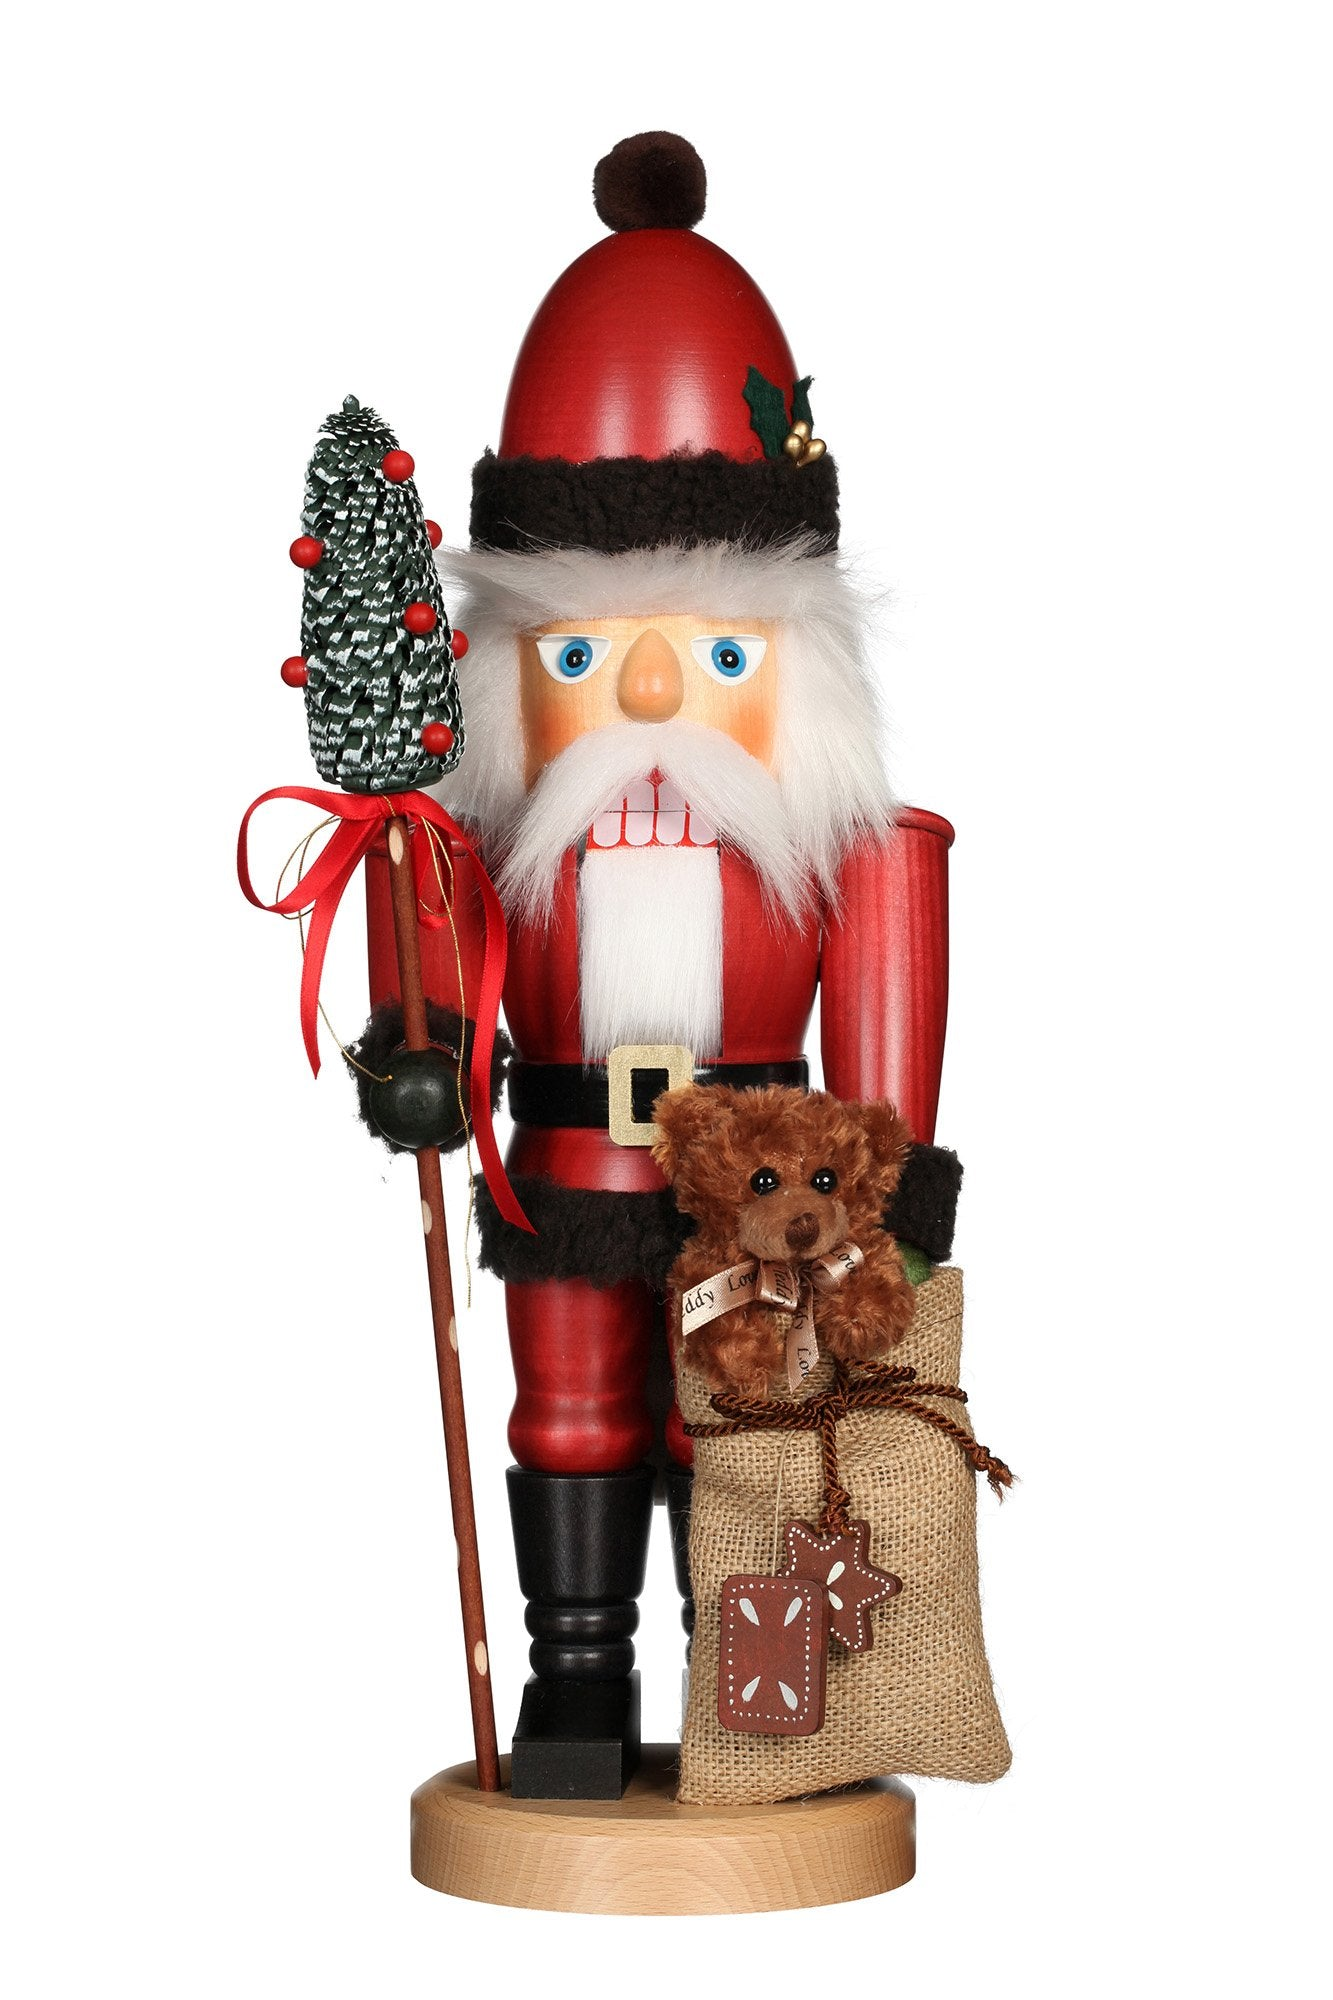 Nutcracker (Classic) - Santa Dressed in Red with Teddy